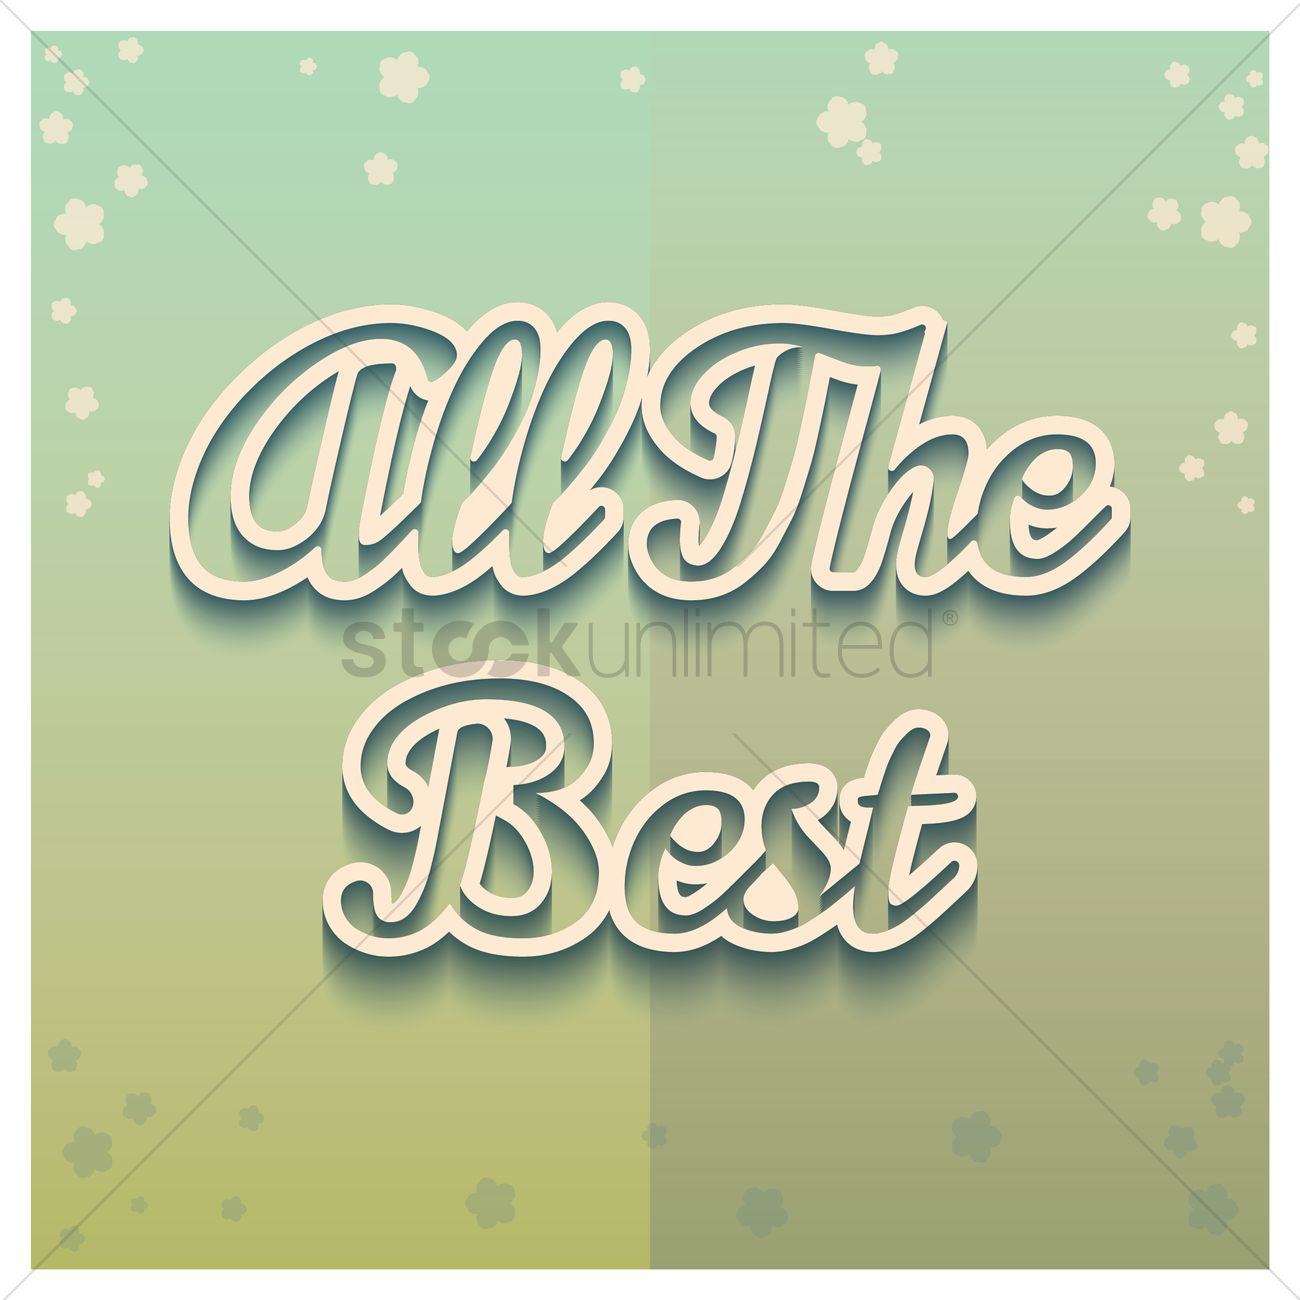 All the best greeting vector image 1811111 stockunlimited all the best greeting vector graphic kristyandbryce Image collections